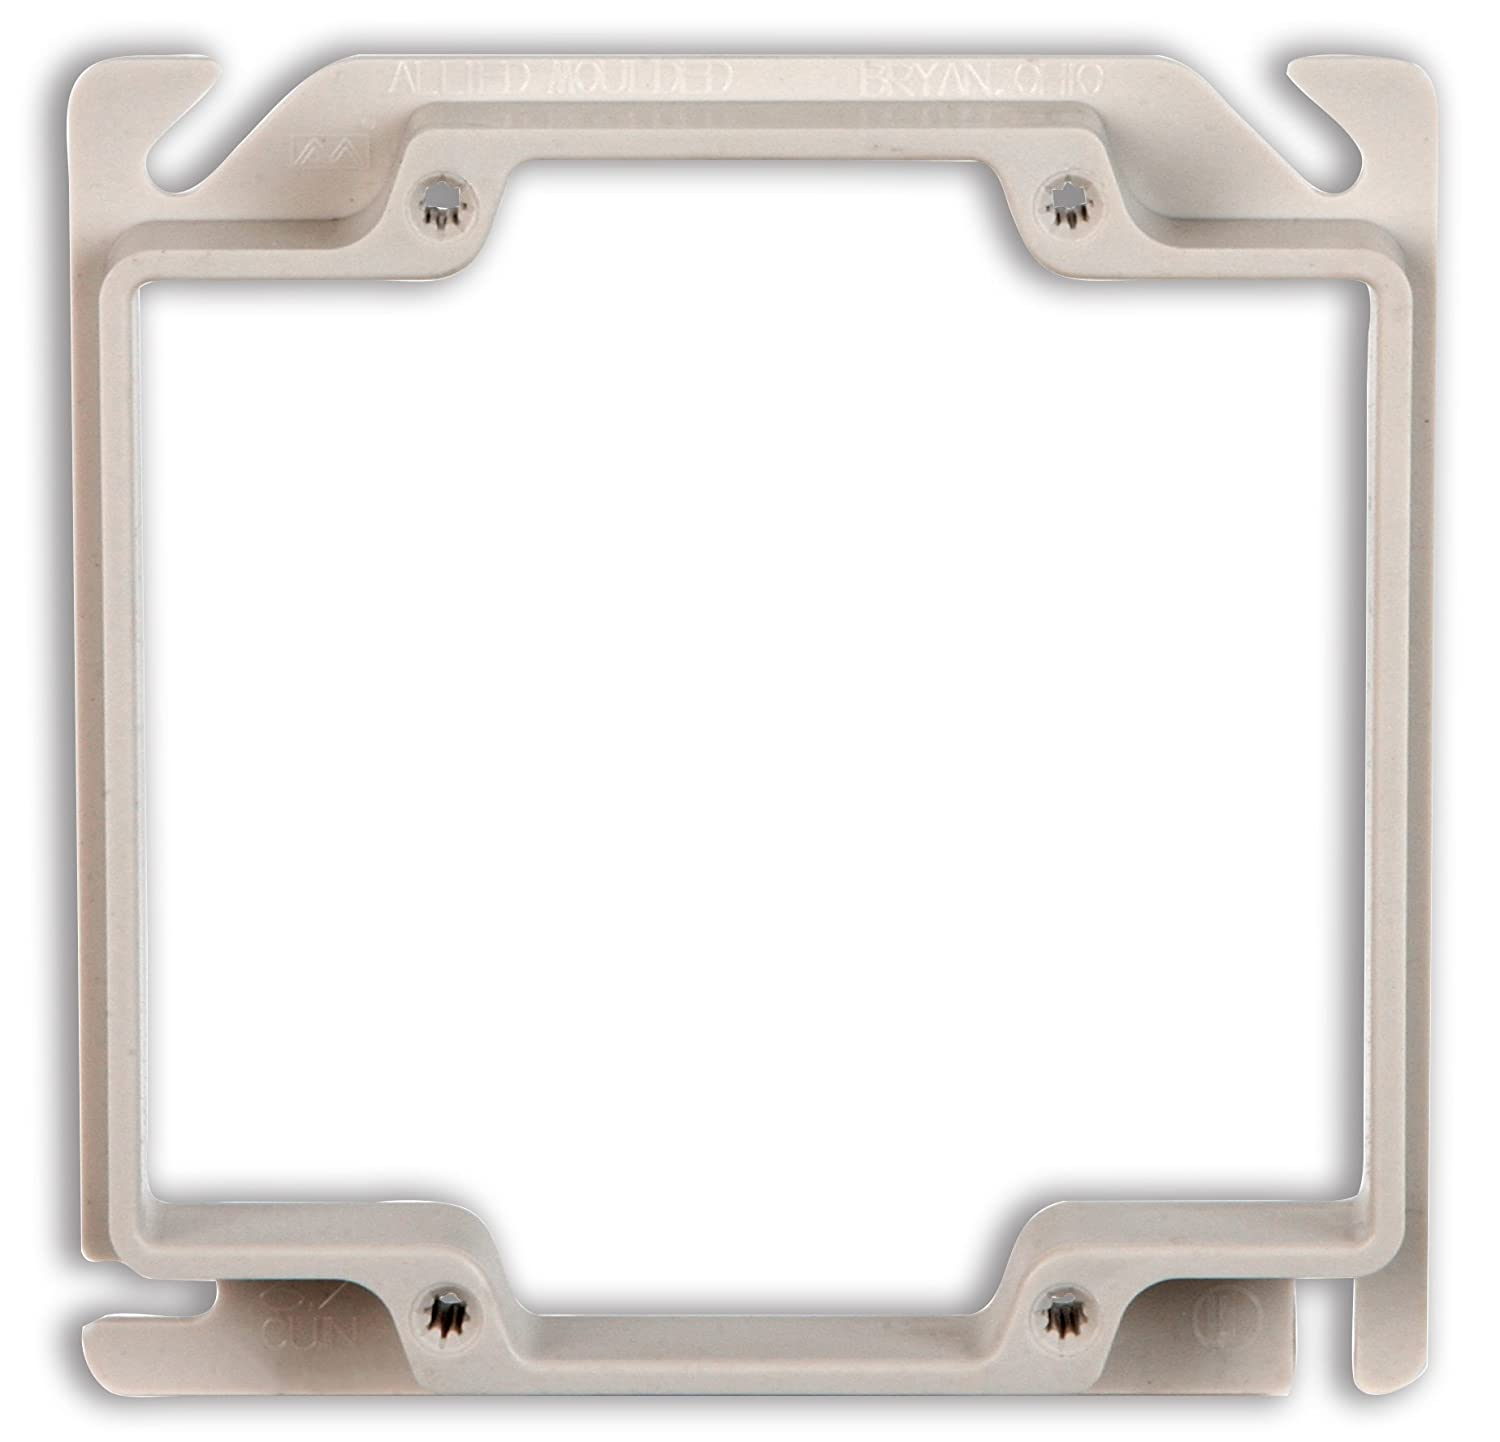 Allied Moulded H9346= Plaster Rings and Covers